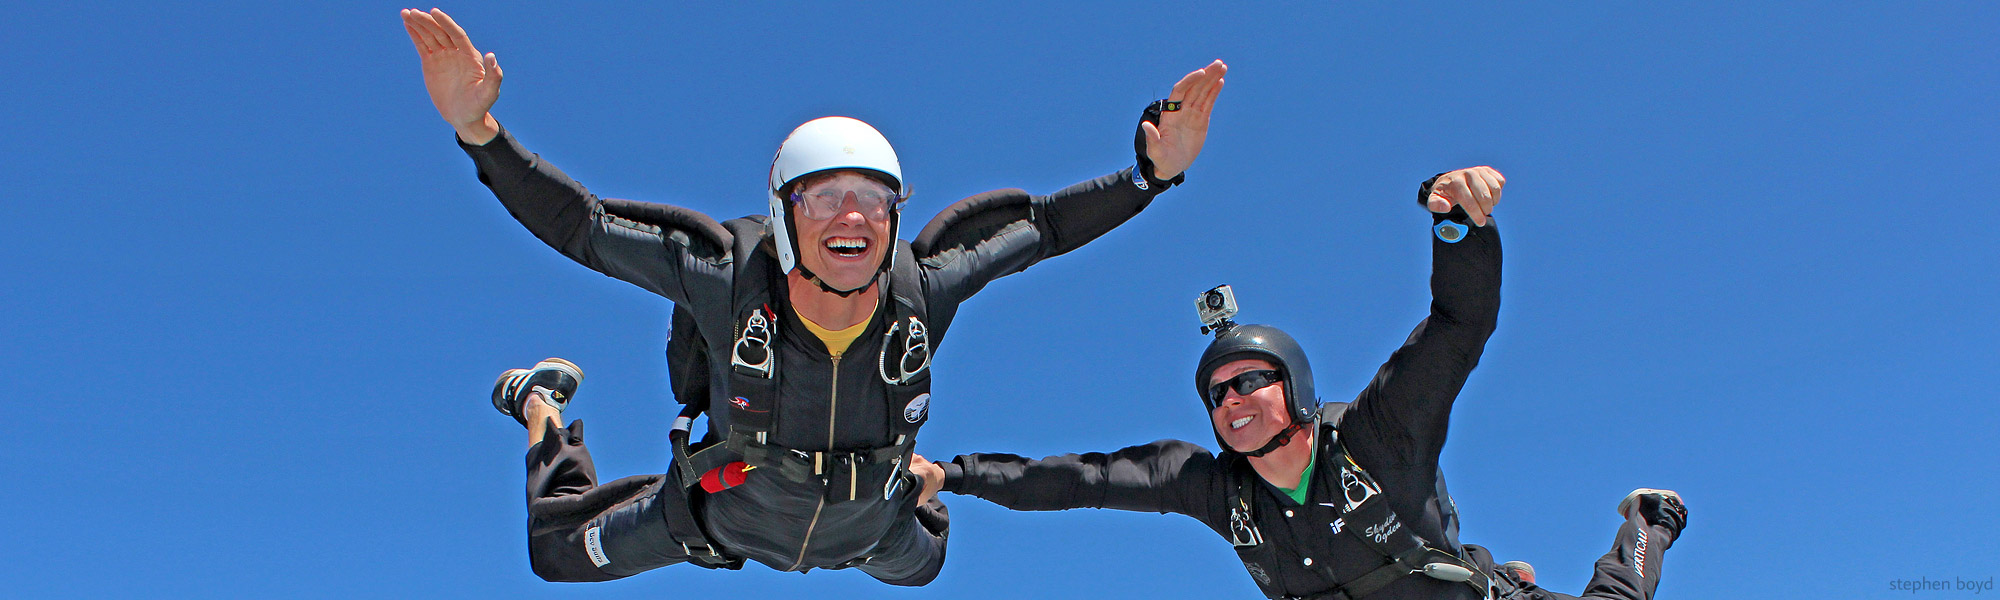 how to get a skydiving license usa